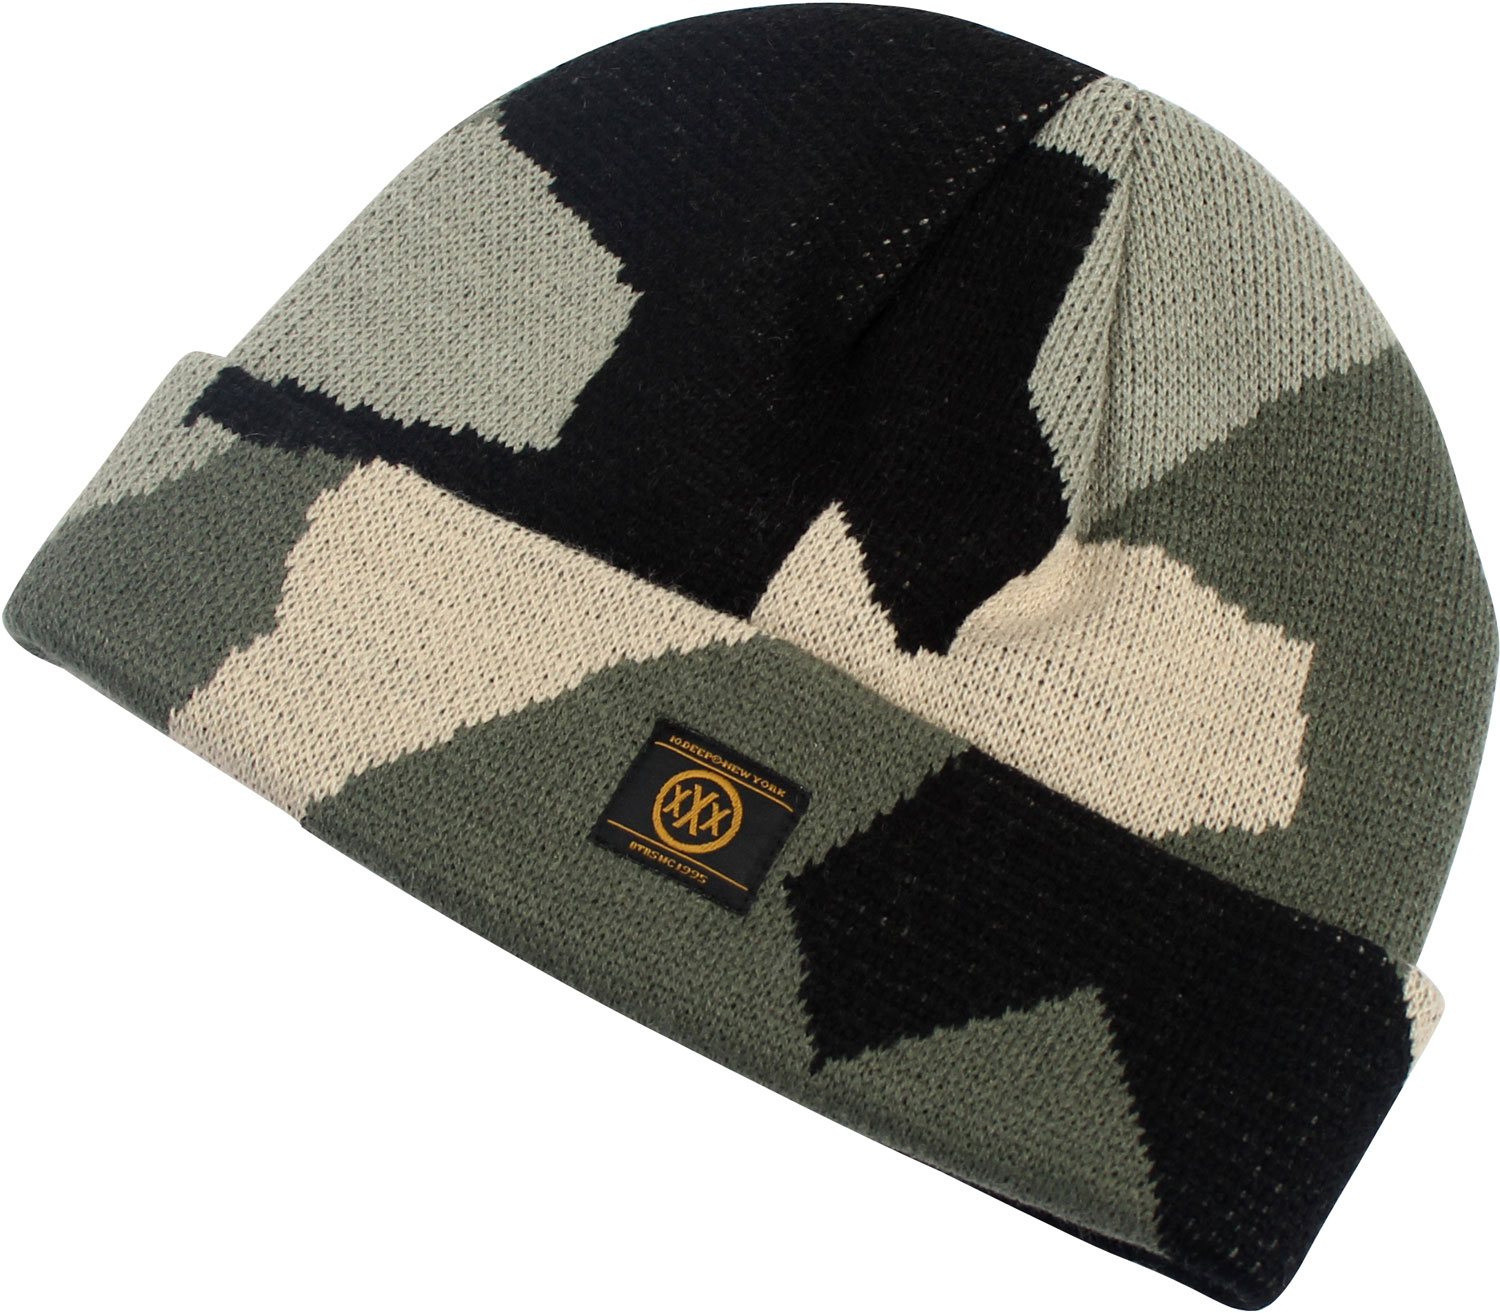 Image of 10 Deep - DPM Knit Beanie